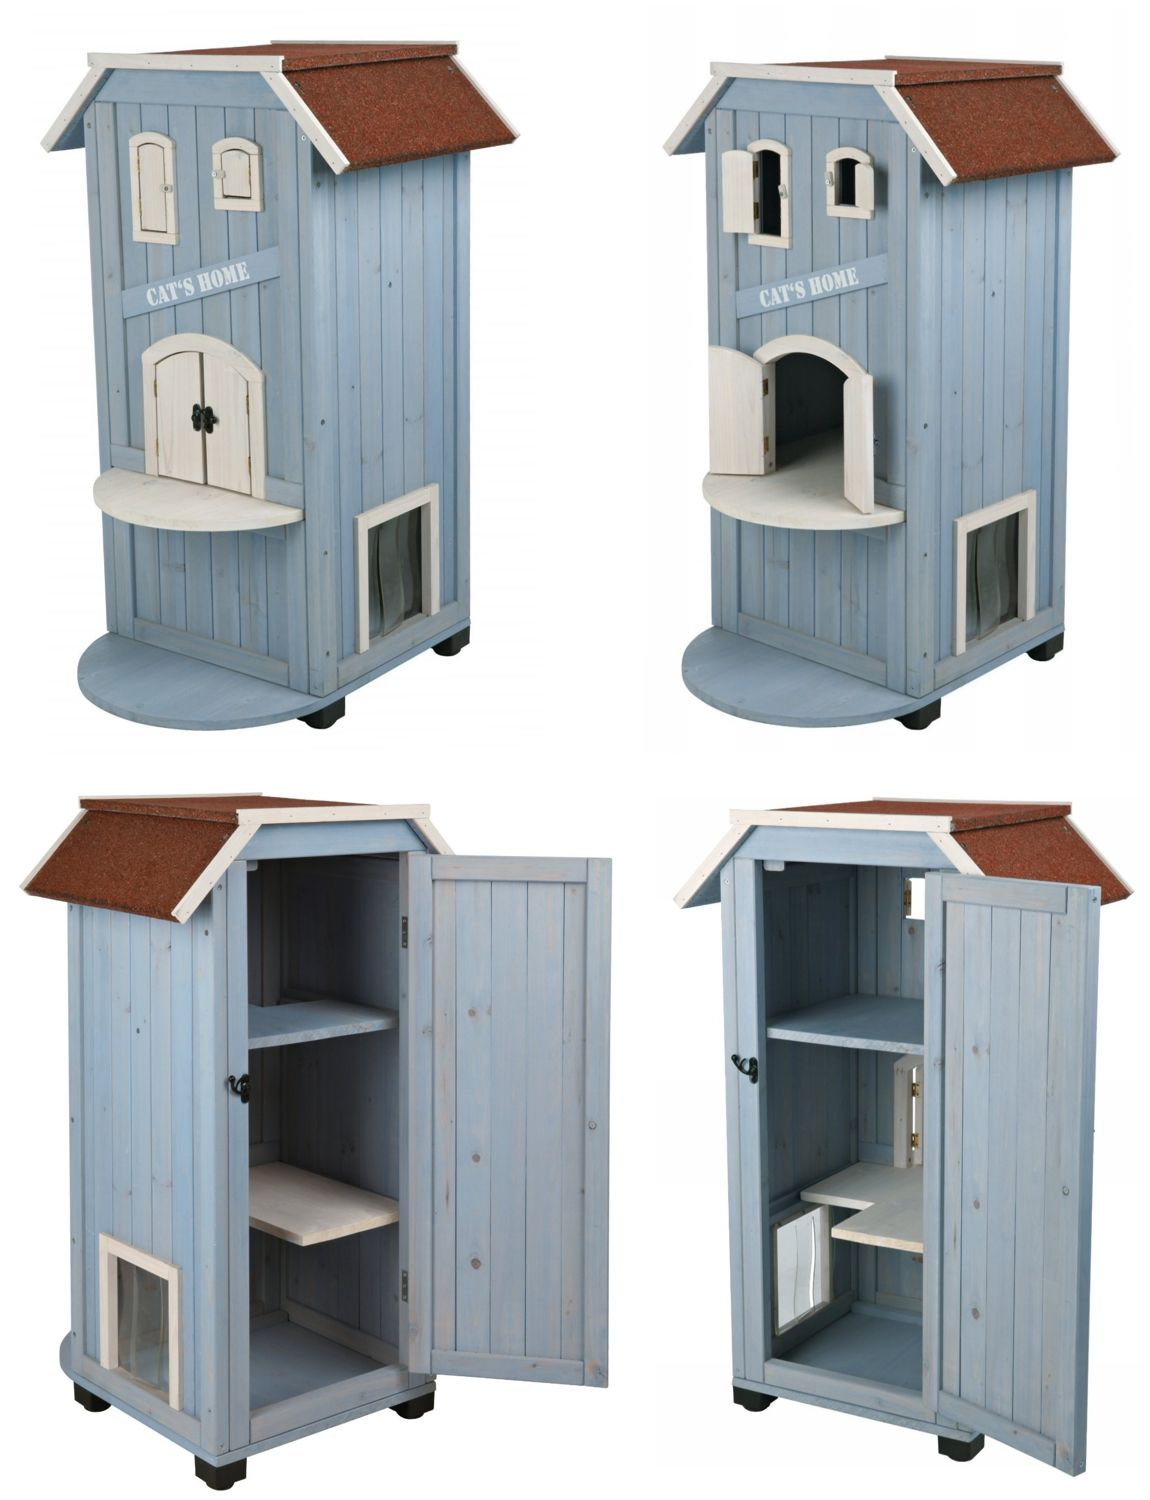 This is a 3-story wooden cat house with weatherproof finish that ...